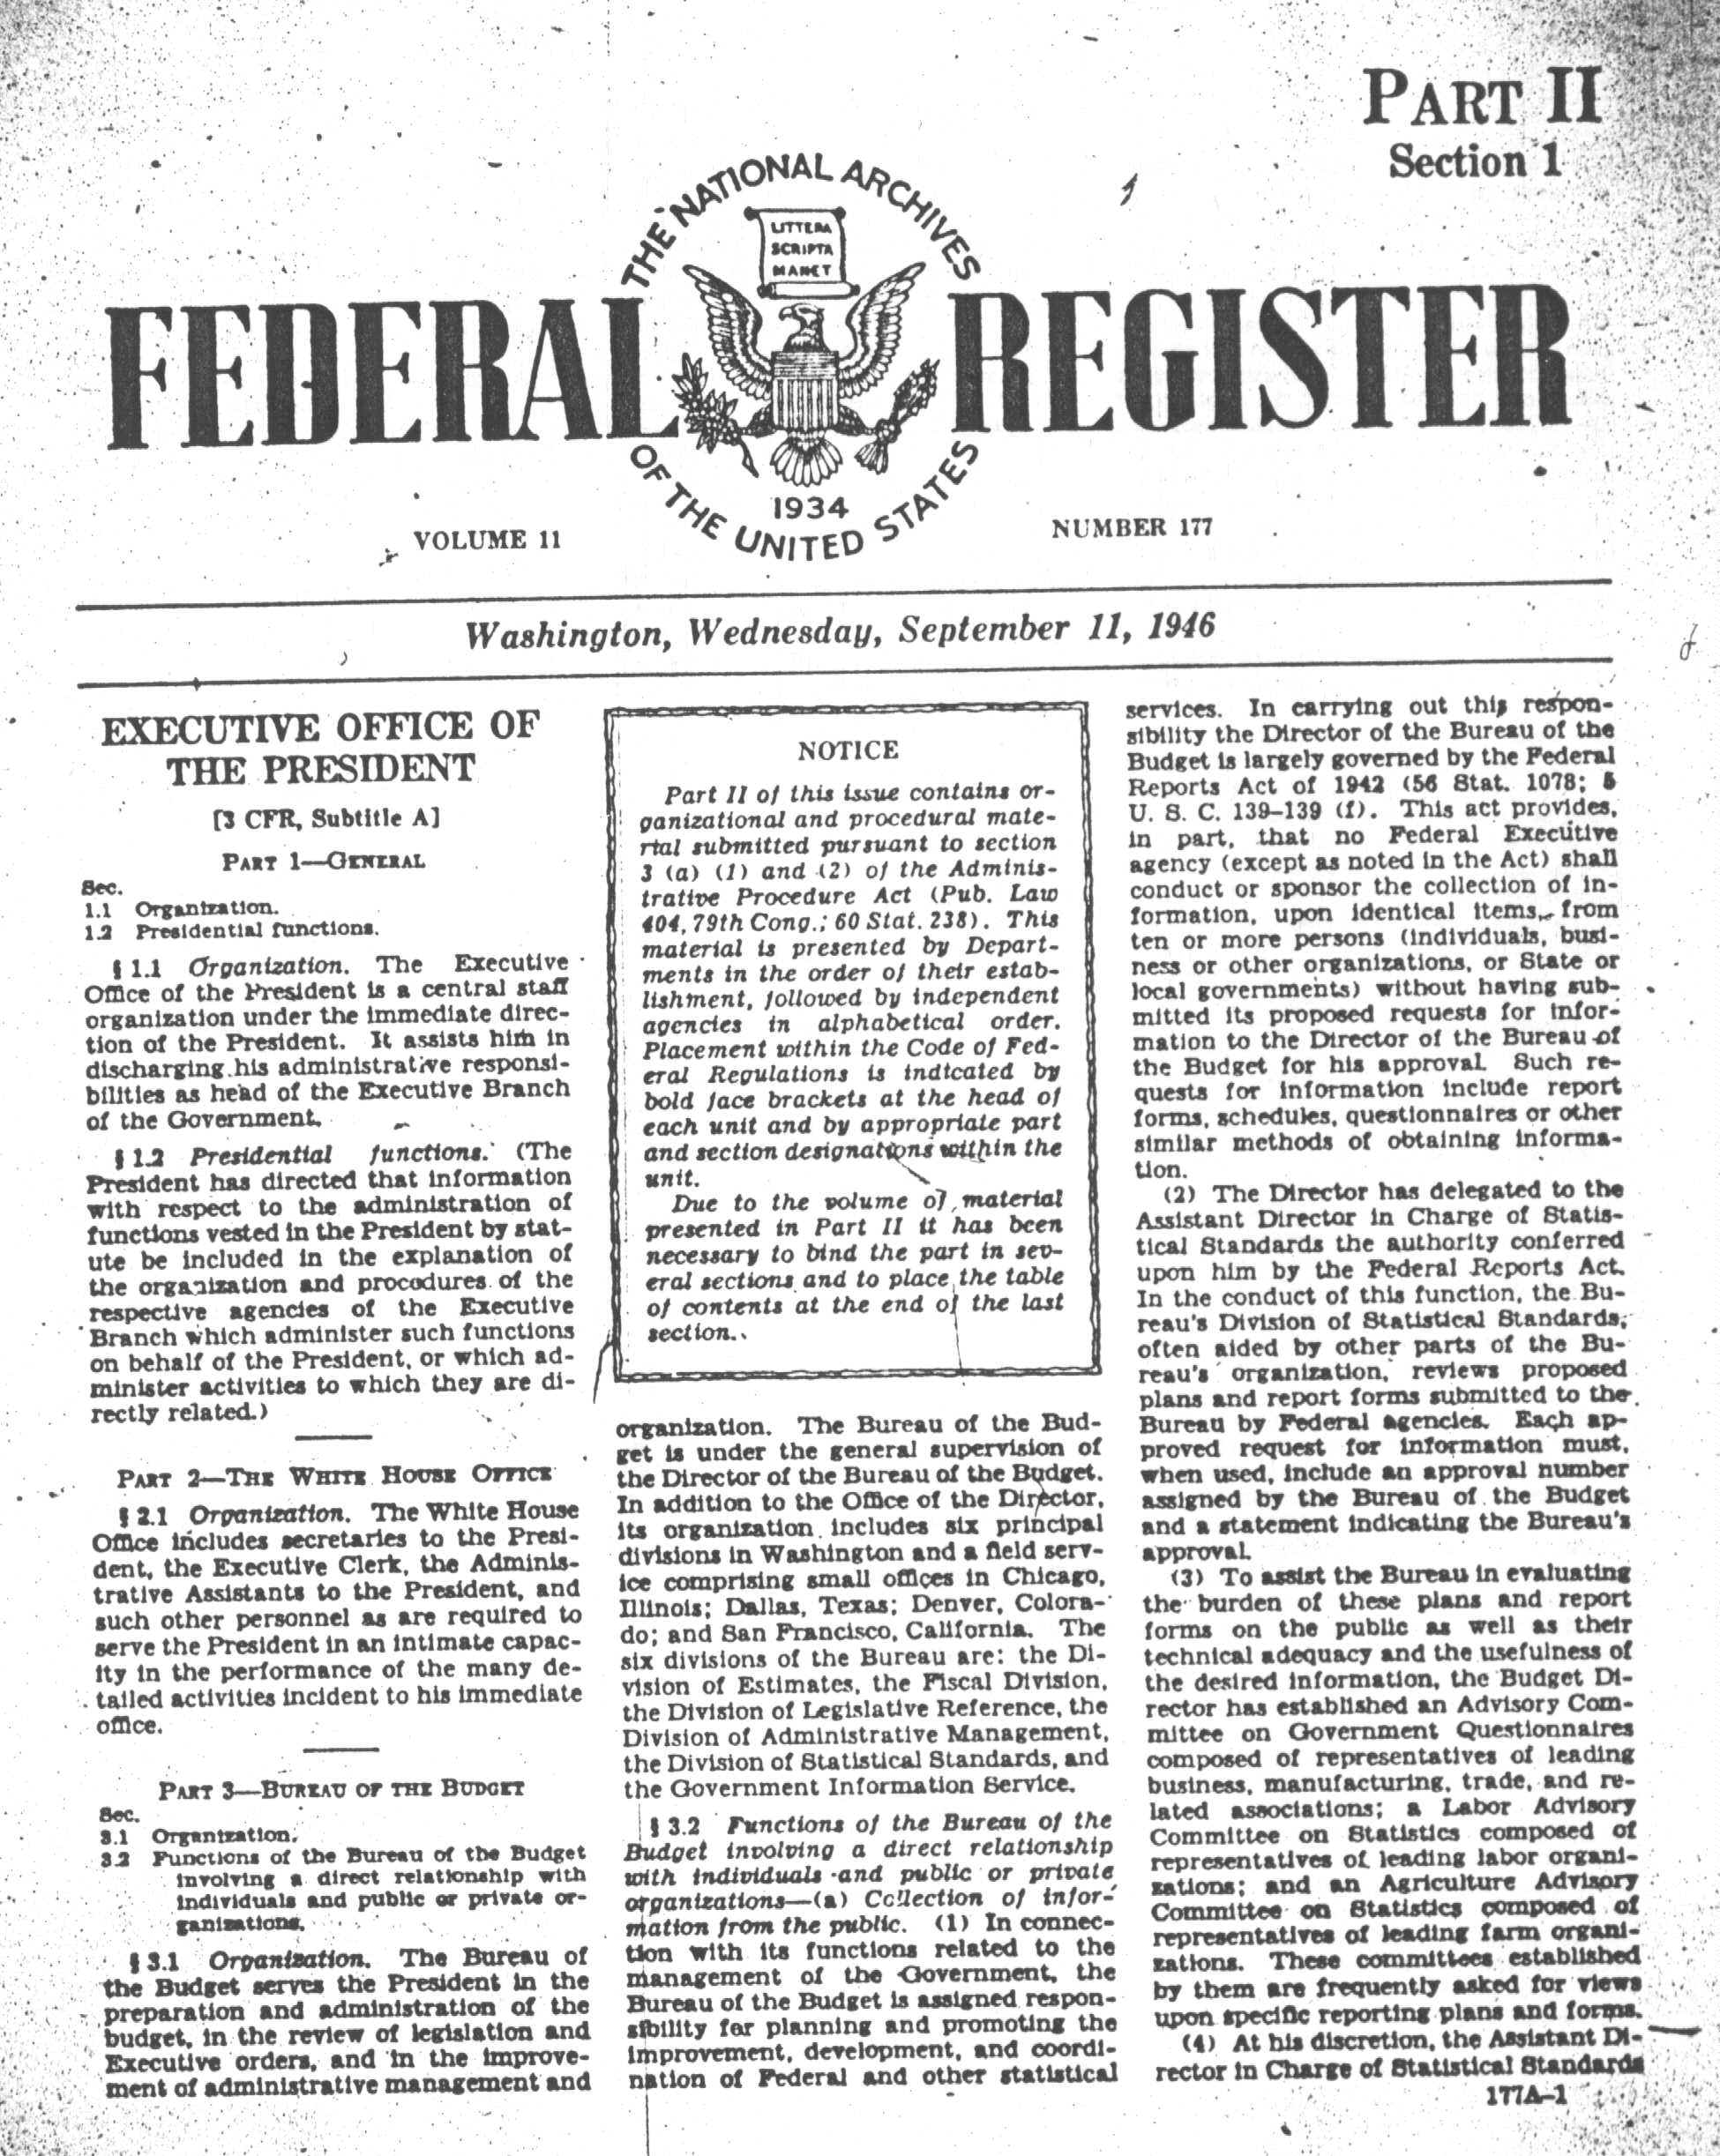 Are You Required to File Form 1040?-Not According to the Federal